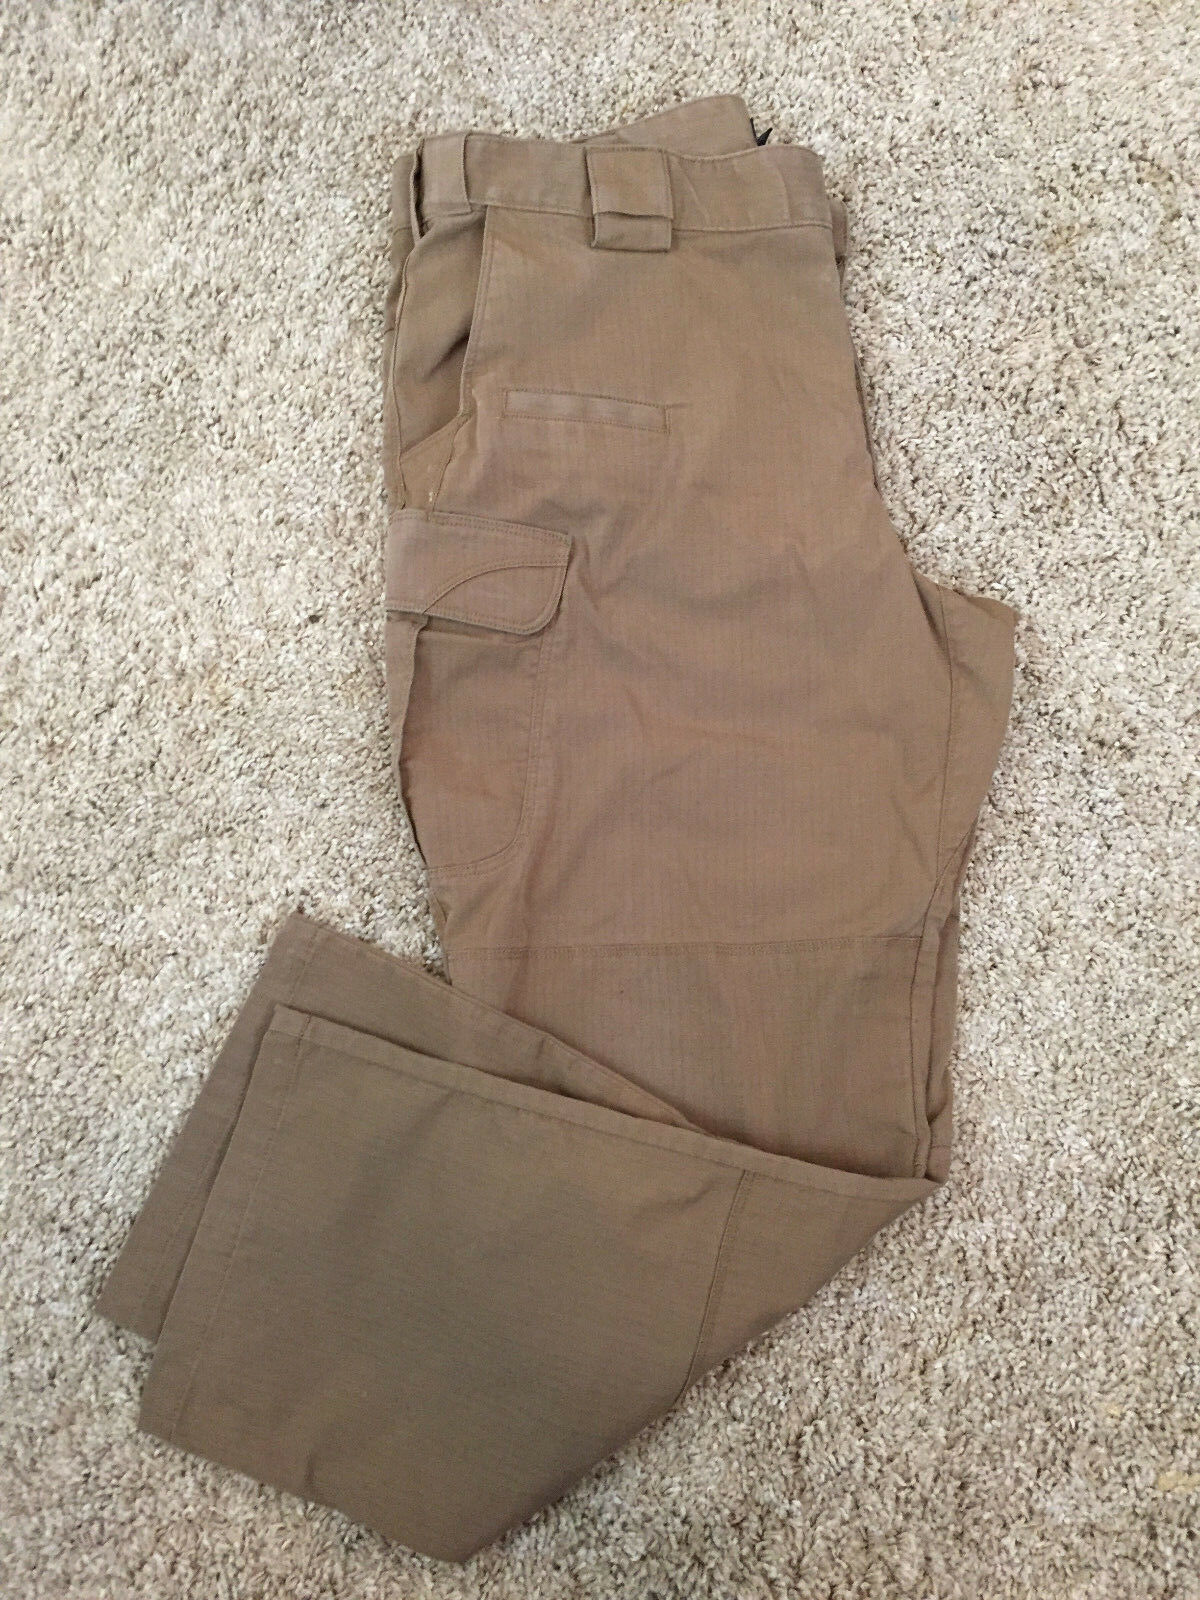 5.11 Tactical Series Khaki Brown Cargo Utility Pants 38 30 Flat Front